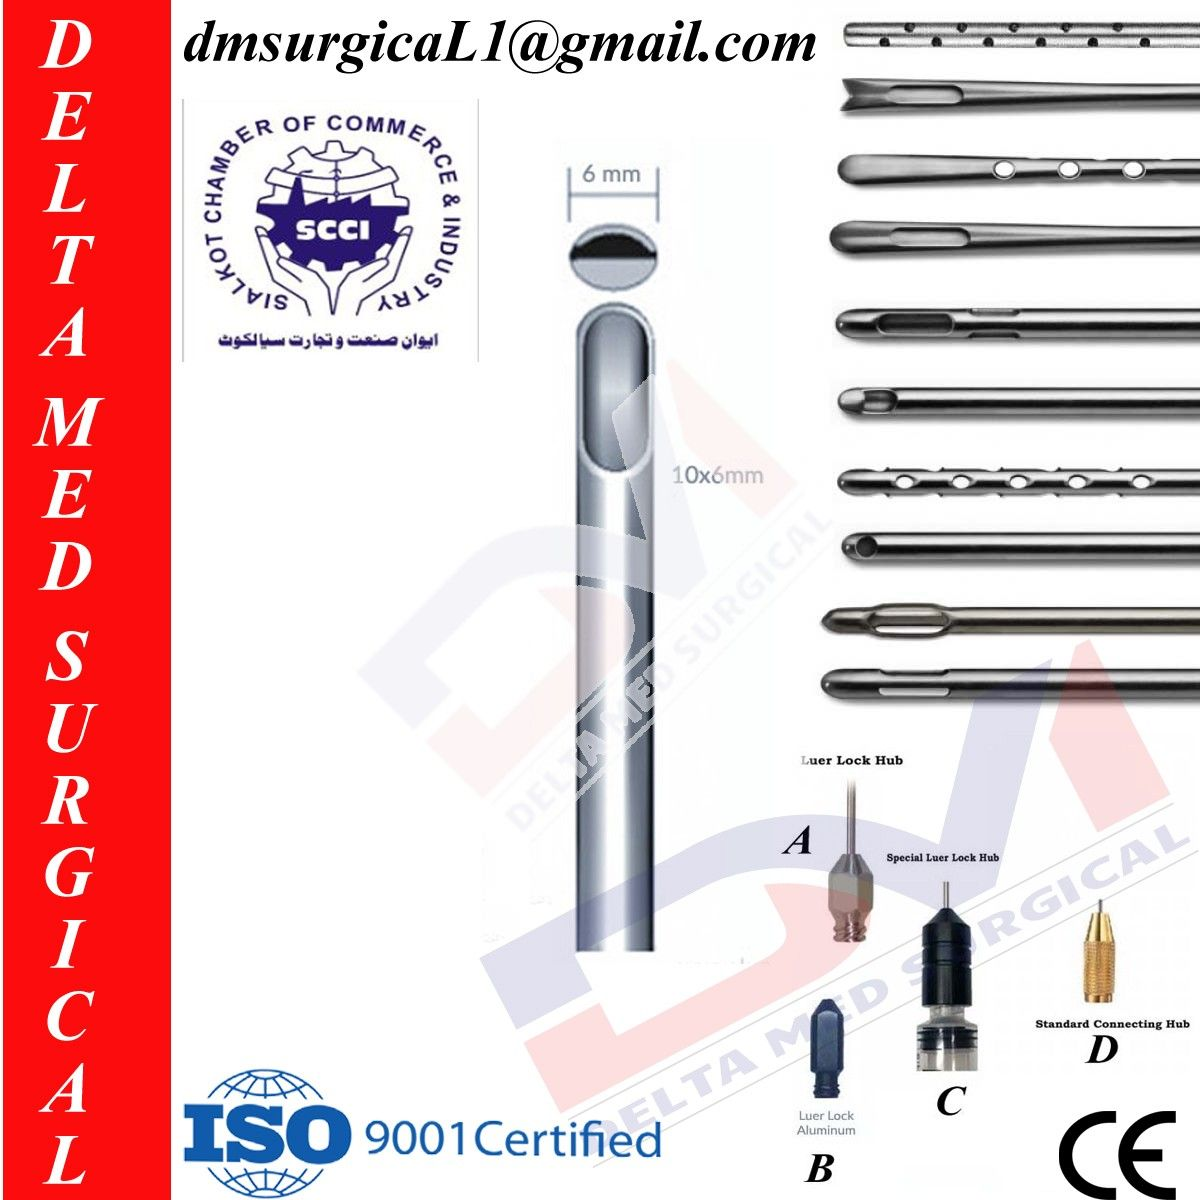 Liposuction Cannula And One Central Hole 6 Mm And Tip With Hold Liposuction Plastic Surgery Surgery